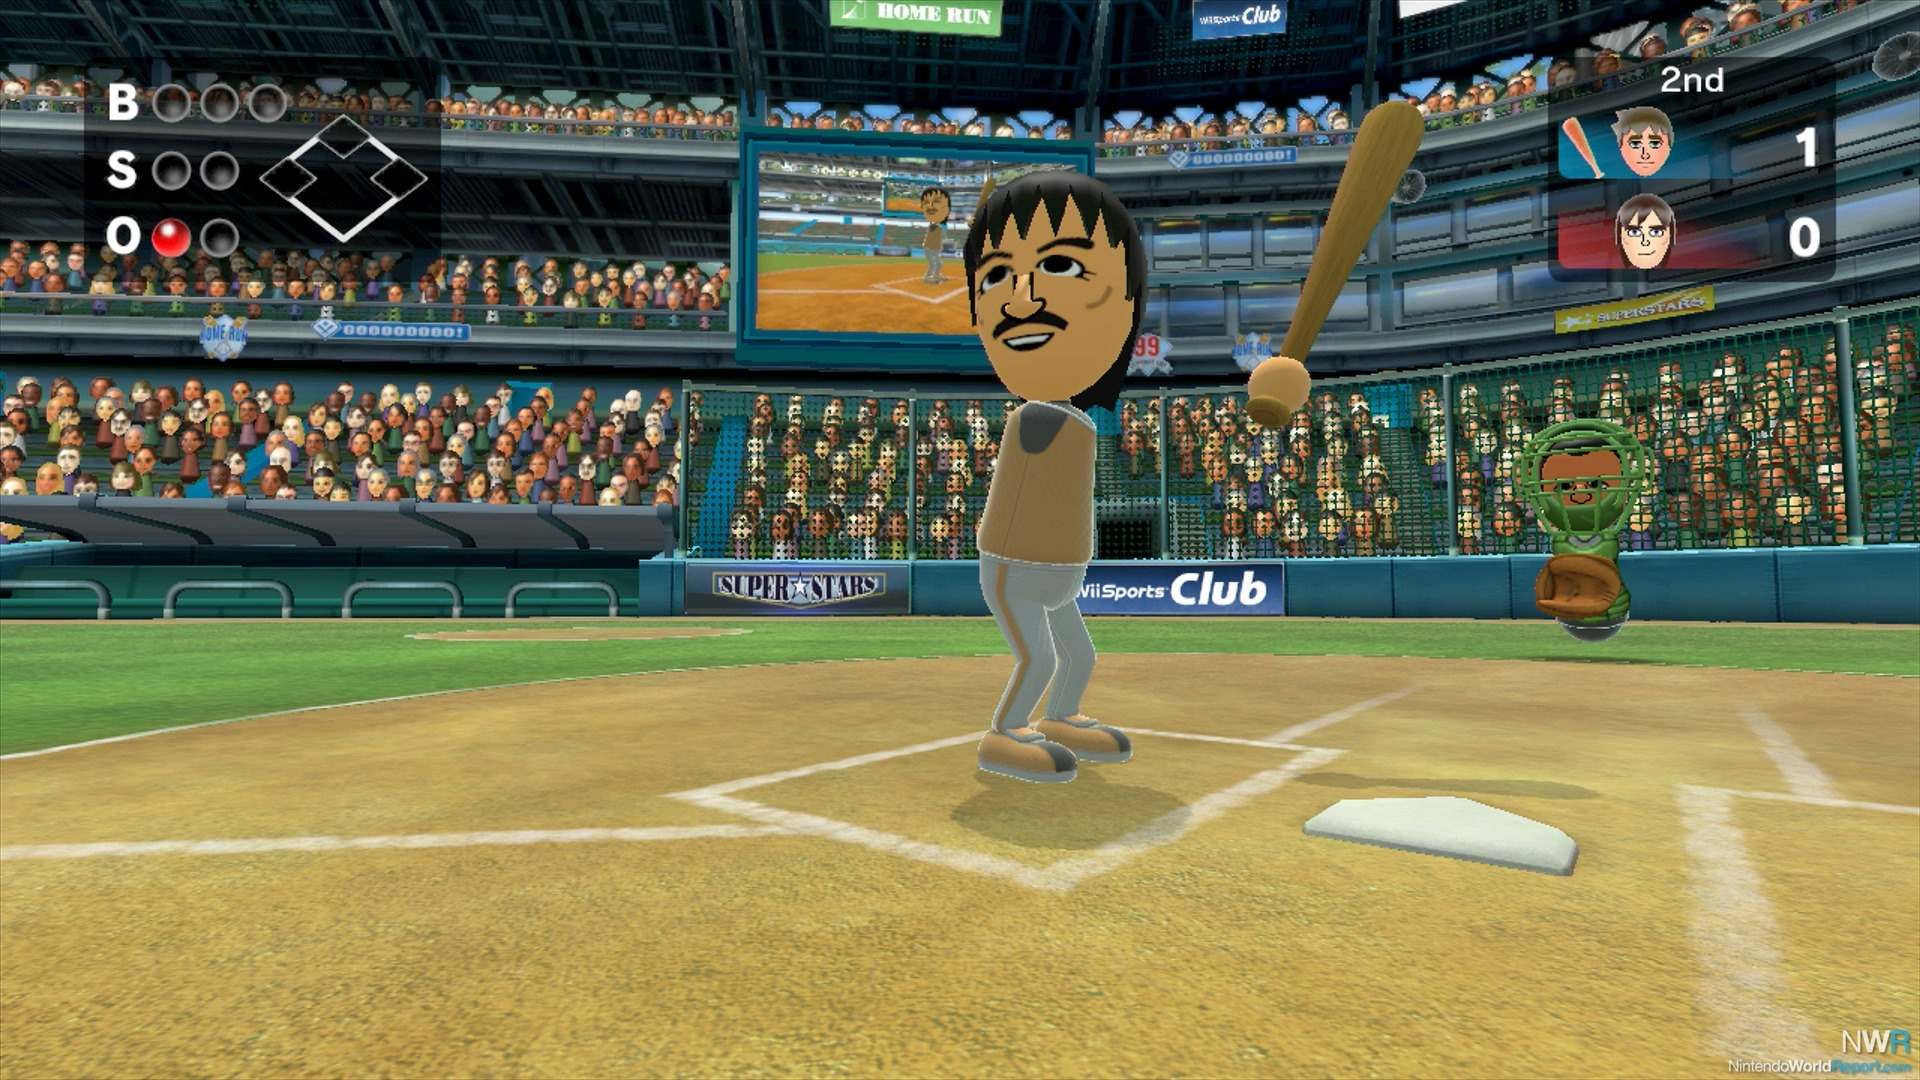 Wii Sports Contents a Wii Sports Game Was a